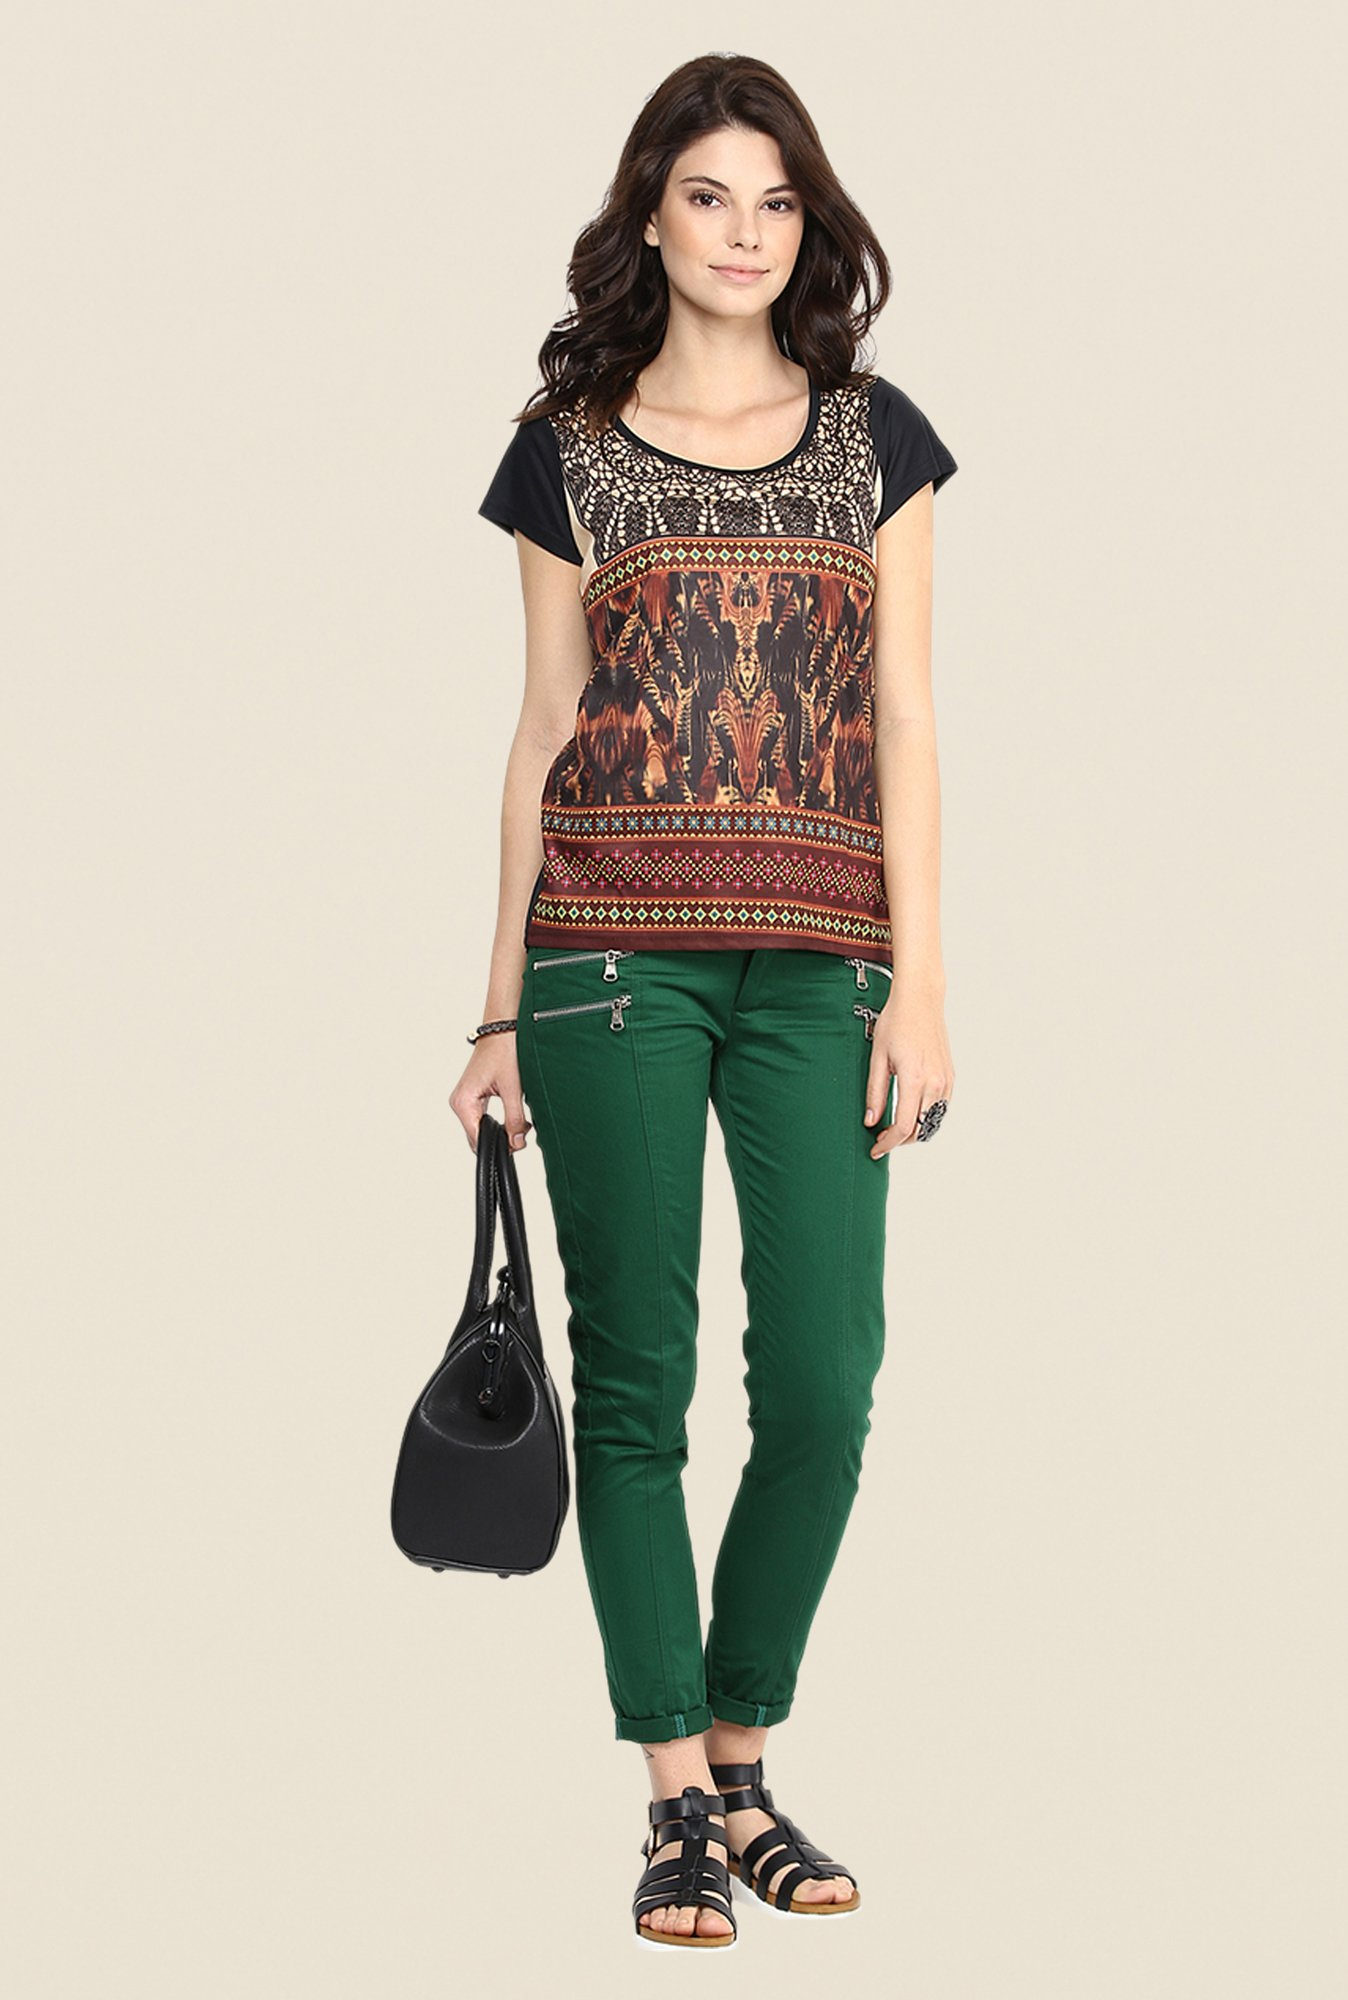 Yepme Multicolor Janice Party Top